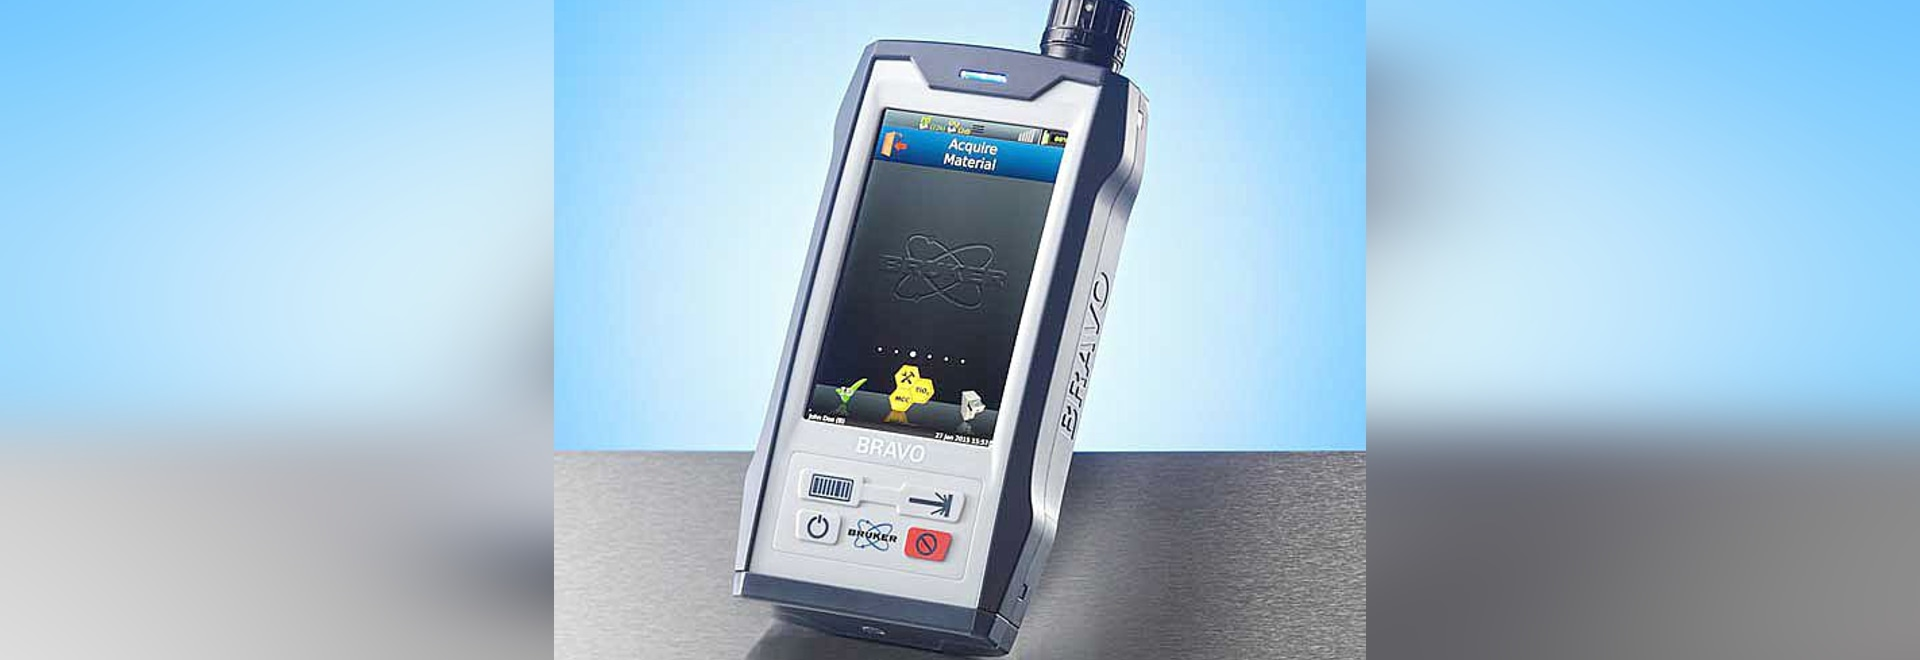 Bruker launches new BRAVO Handheld Raman Spectrometer  for Raw Materials identification